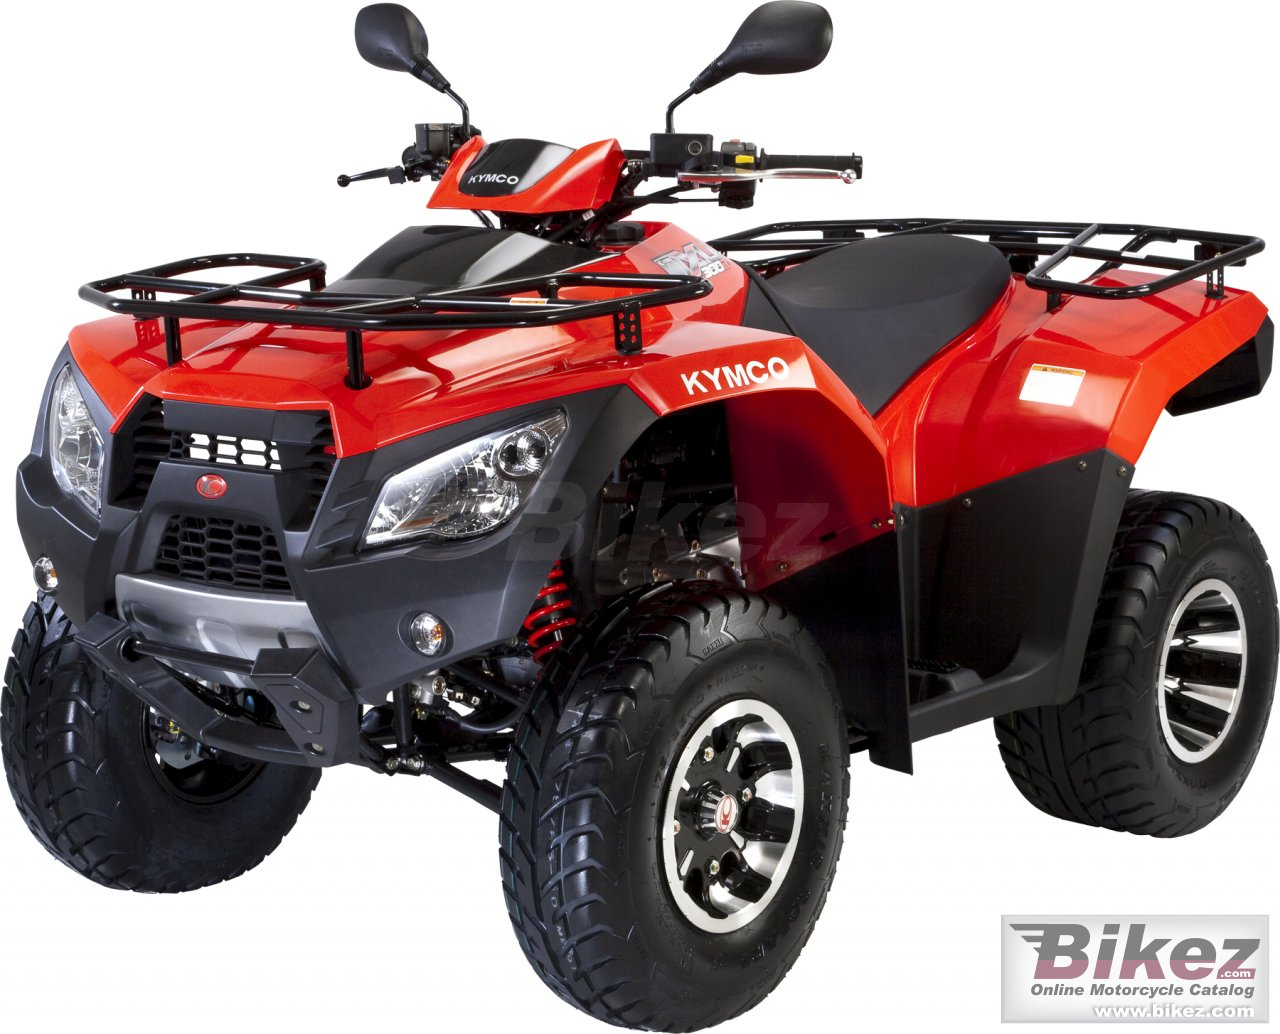 Big Kymco mxu 300 rl picture and wallpaper from Bikez.com